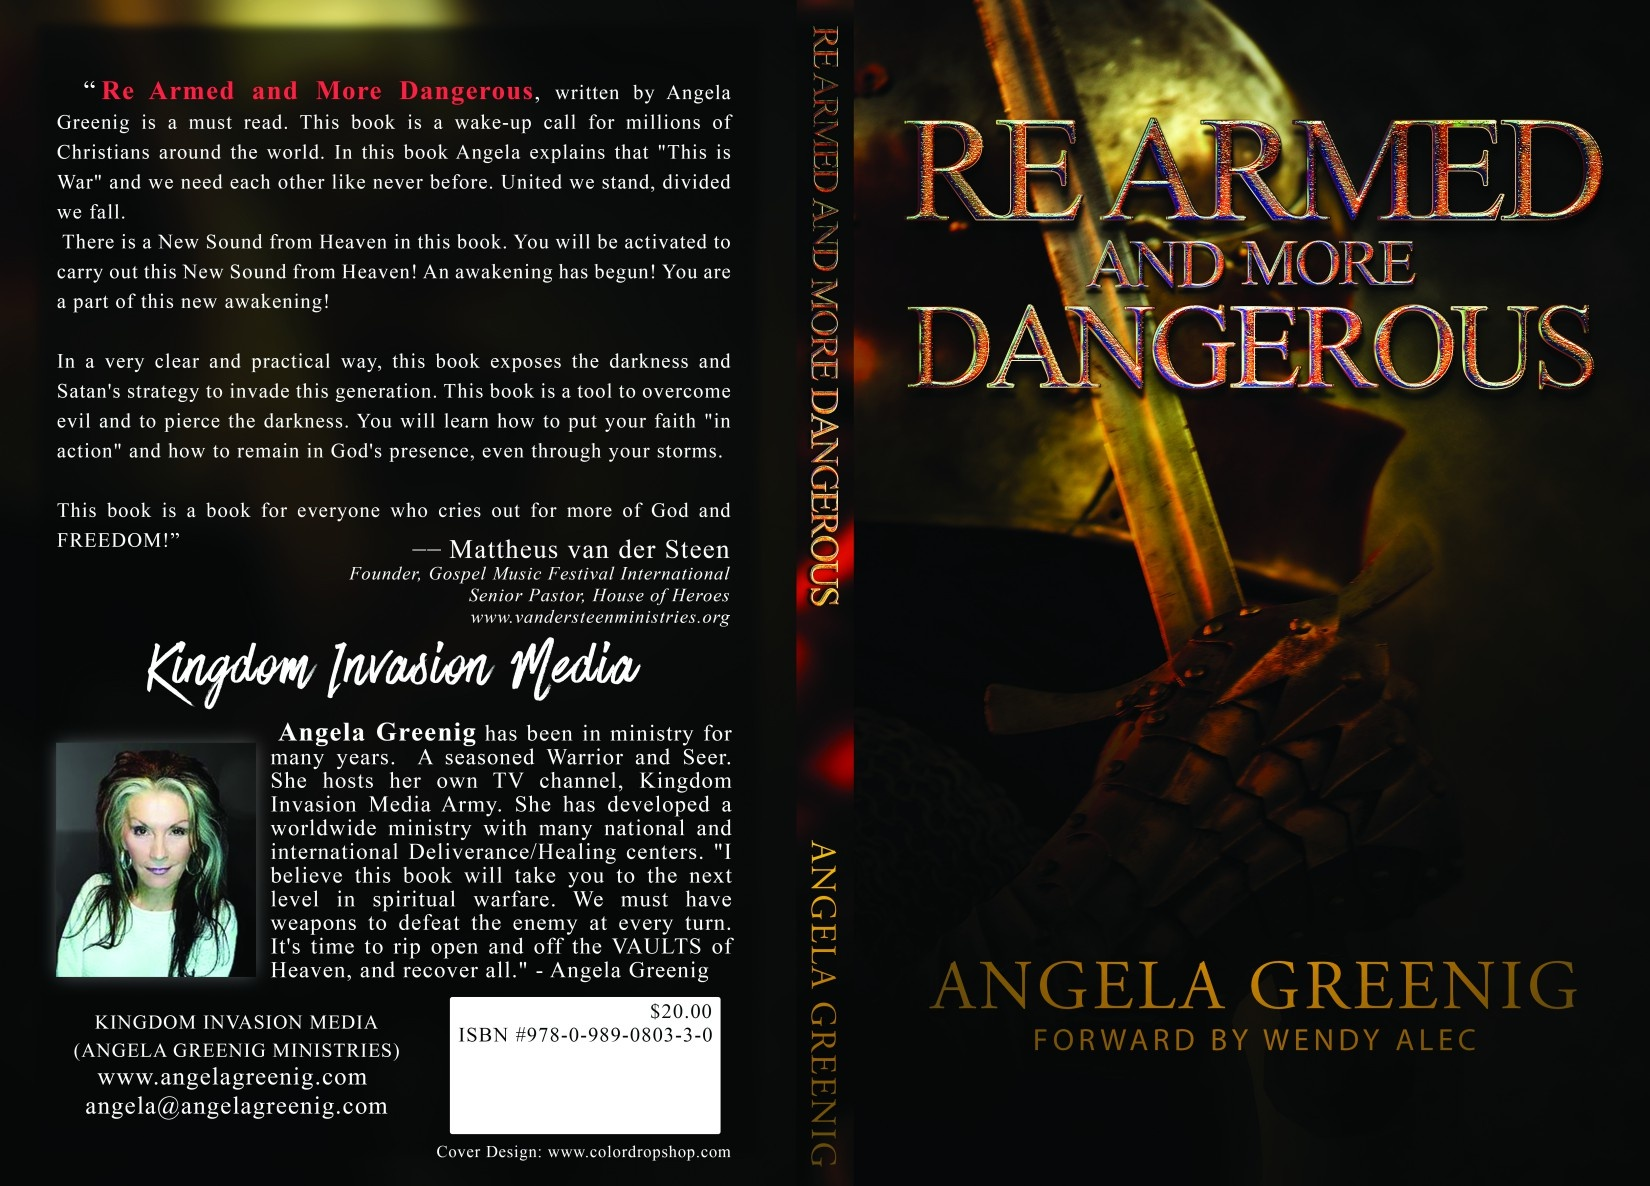 Re-Armed & More Dangerous - Kindle Book